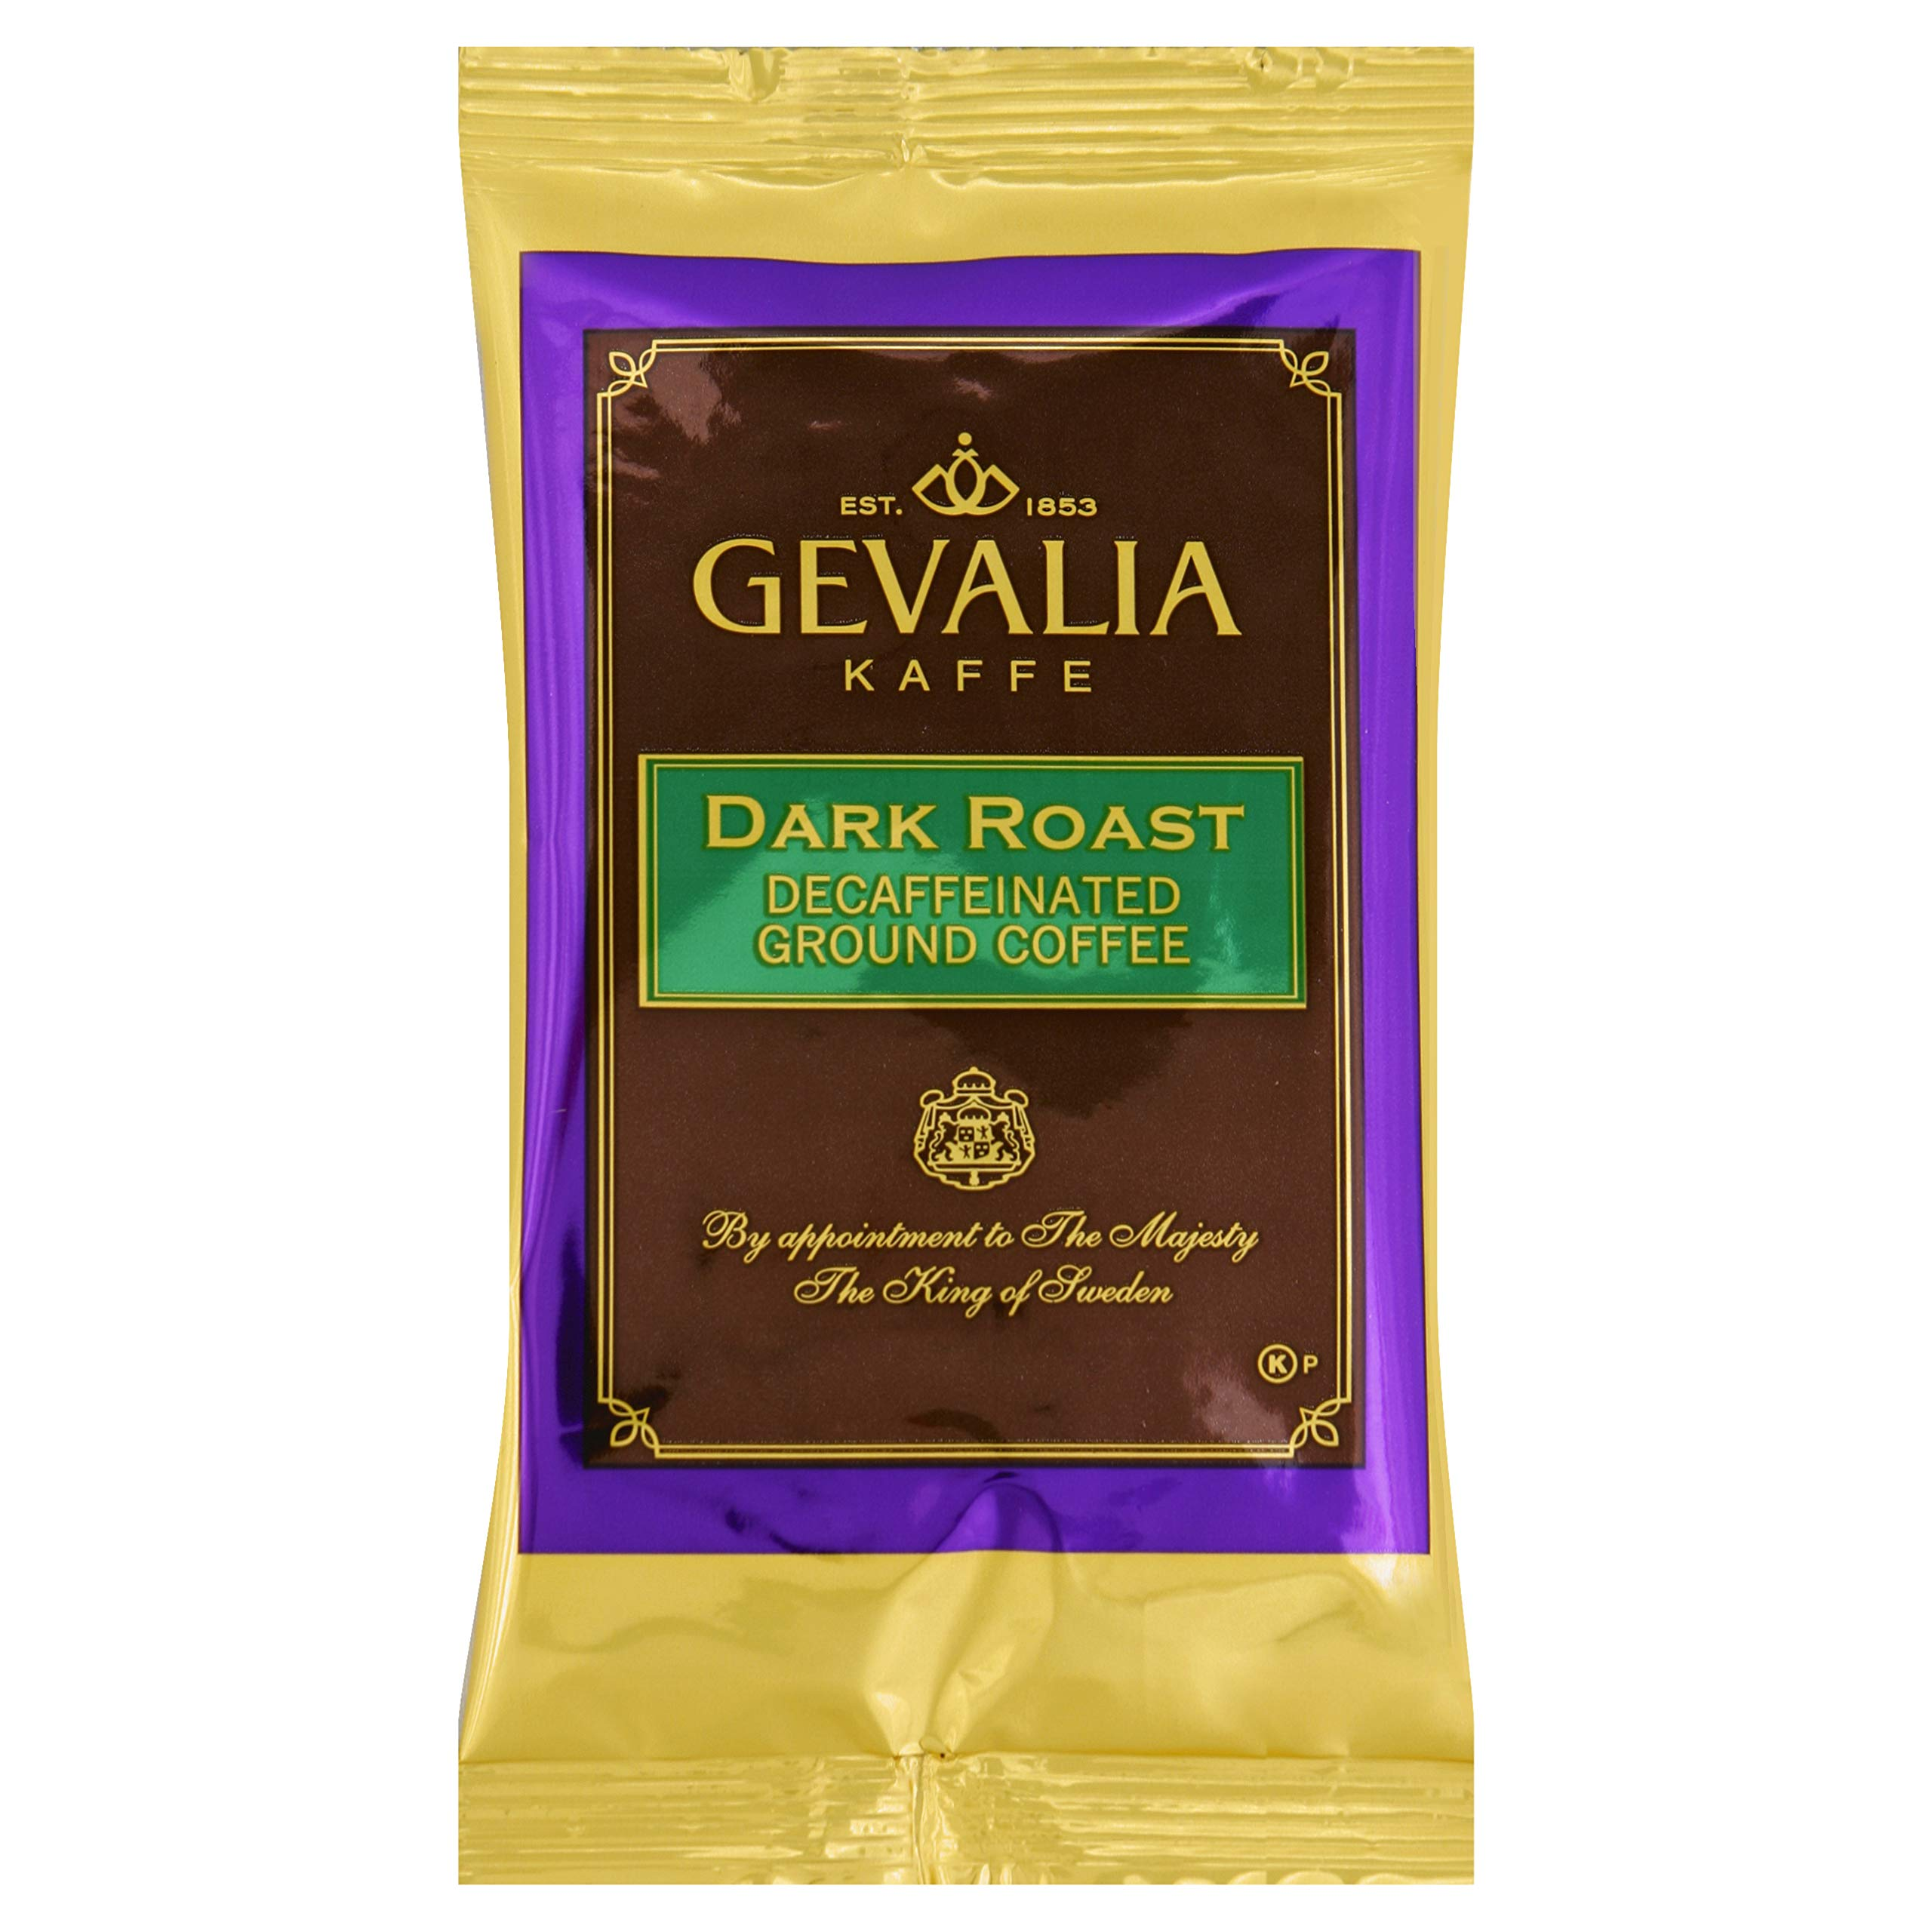 Gevalia Decaf Dark Roast Ground Coffee (2.5 oz Bag, Pack of 24) by Gevalia